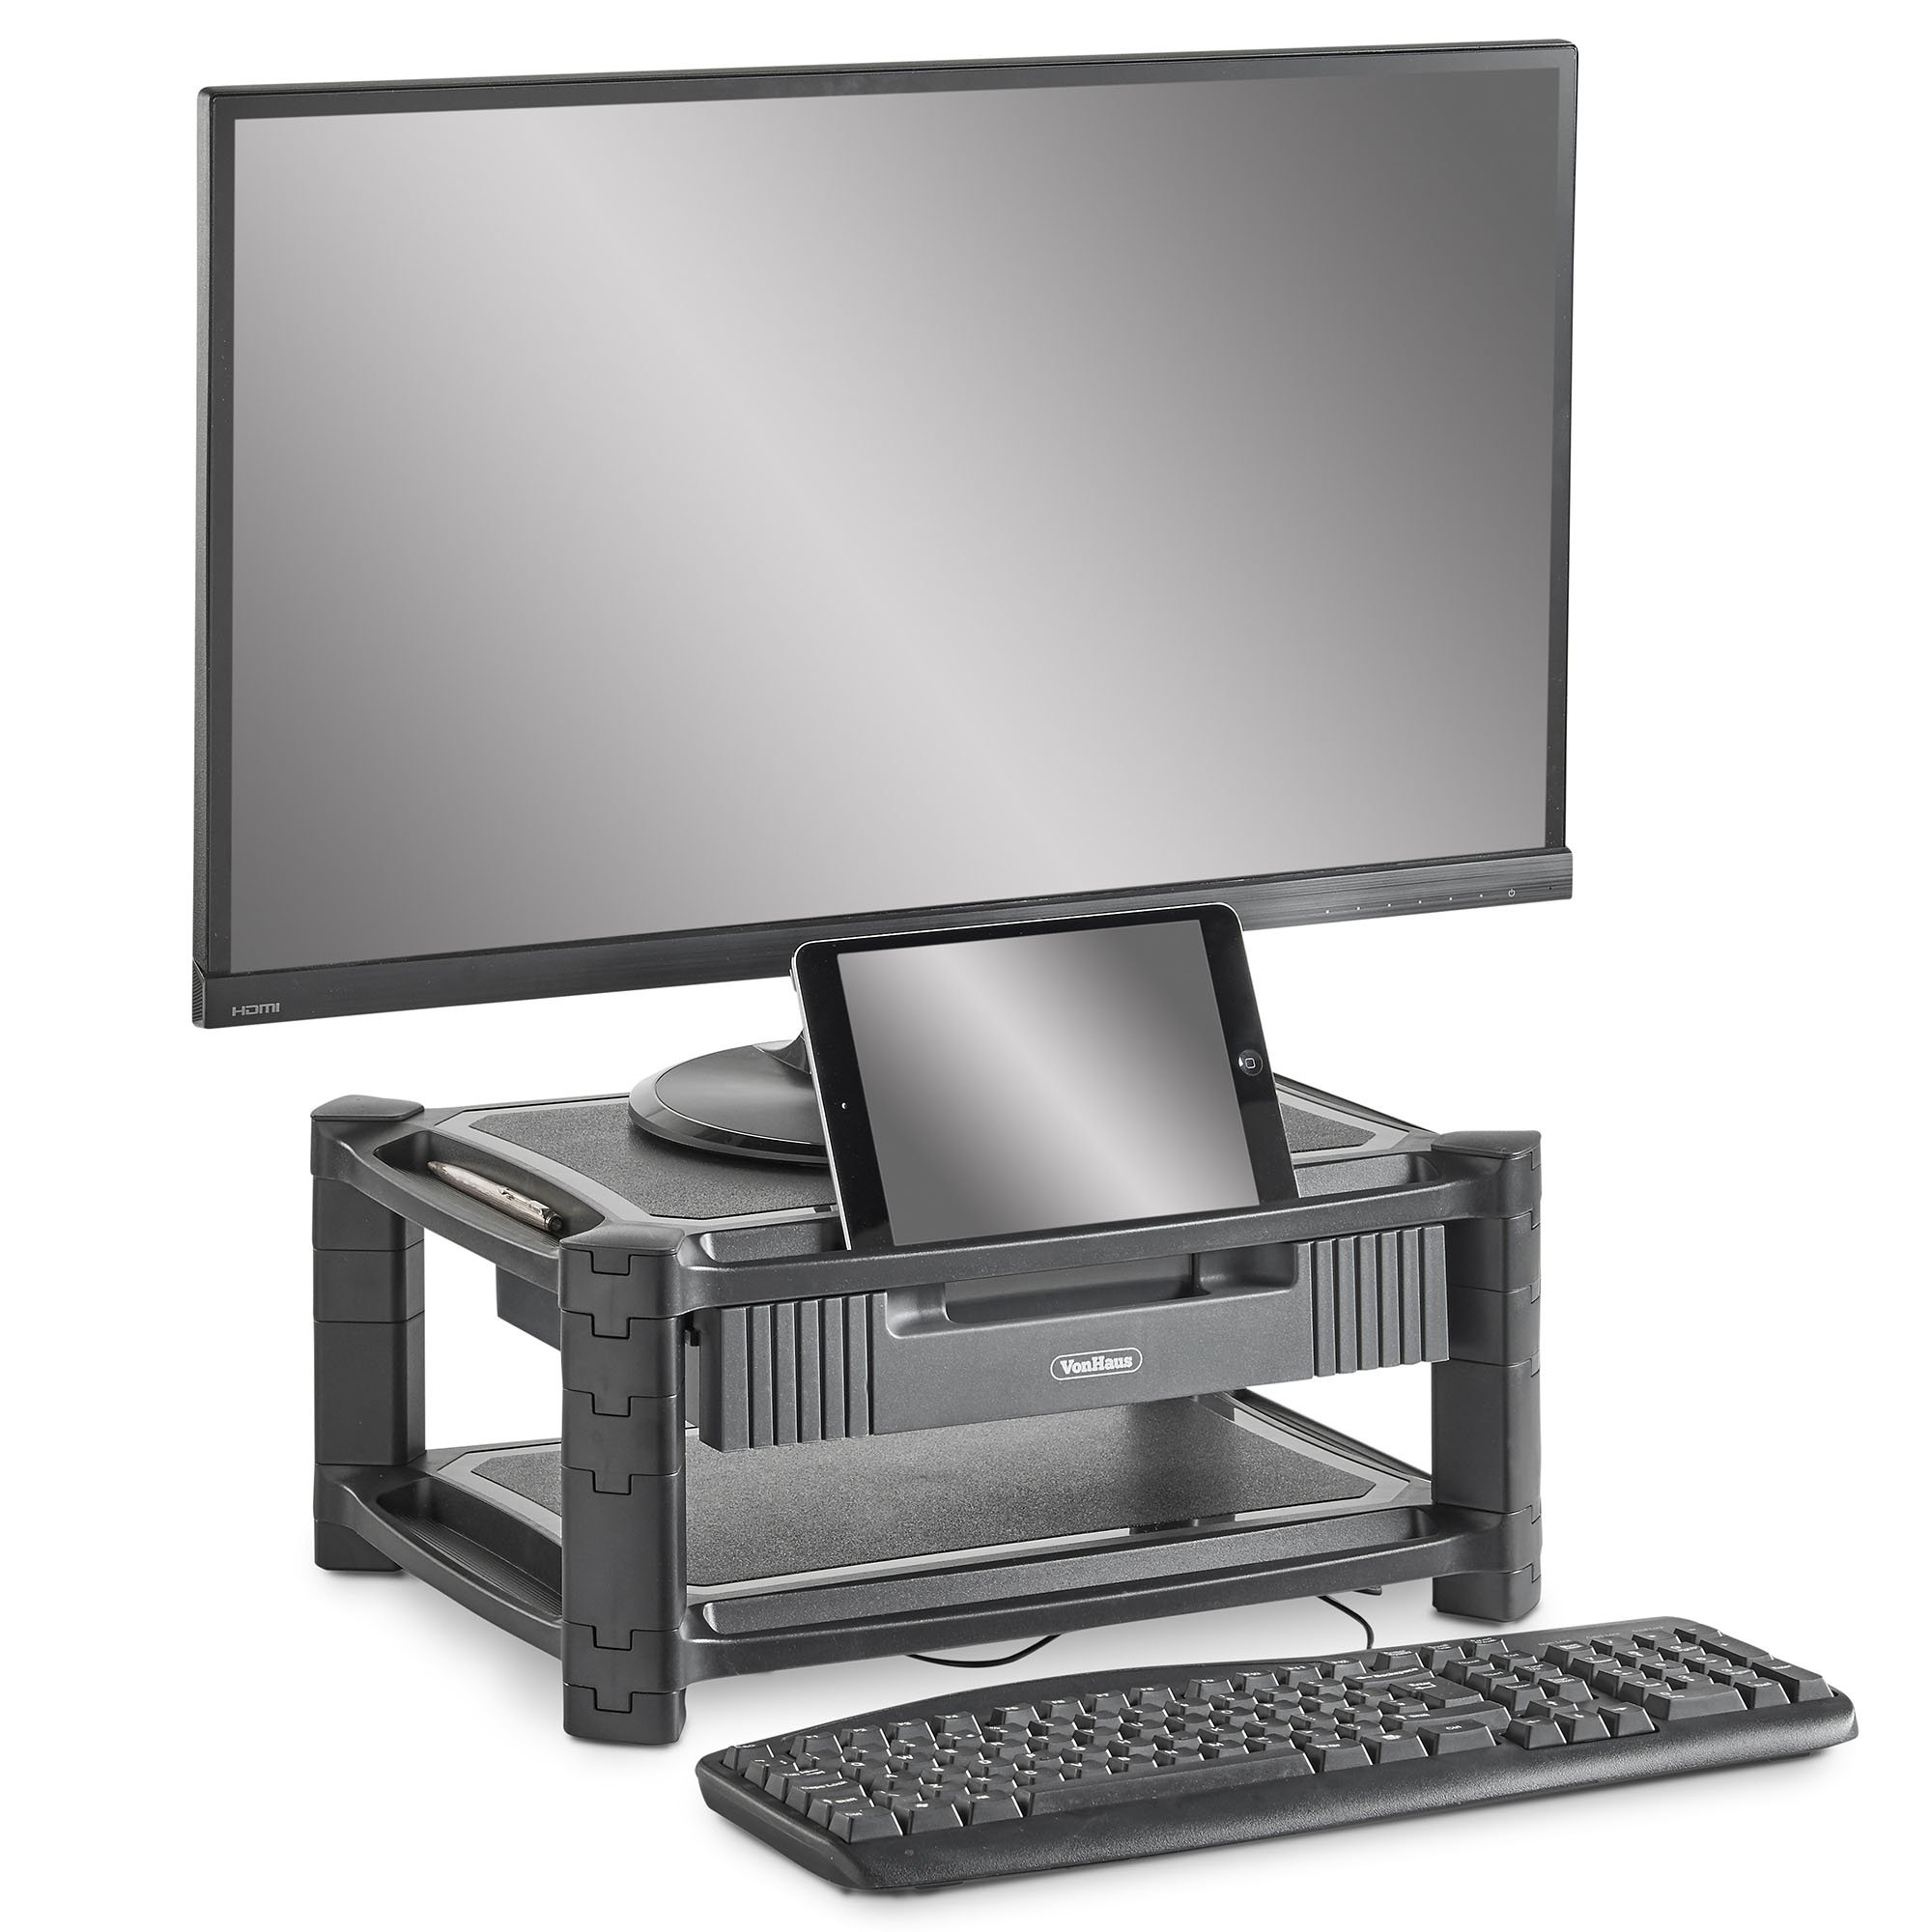 holder up this monitors can drawer stand display bracket wooden to dock intl imac computer hold and have viewing more s rise work or pc product philippines space free with gaming for widescreen universal ergonomic your monitor samdi desktop heighen